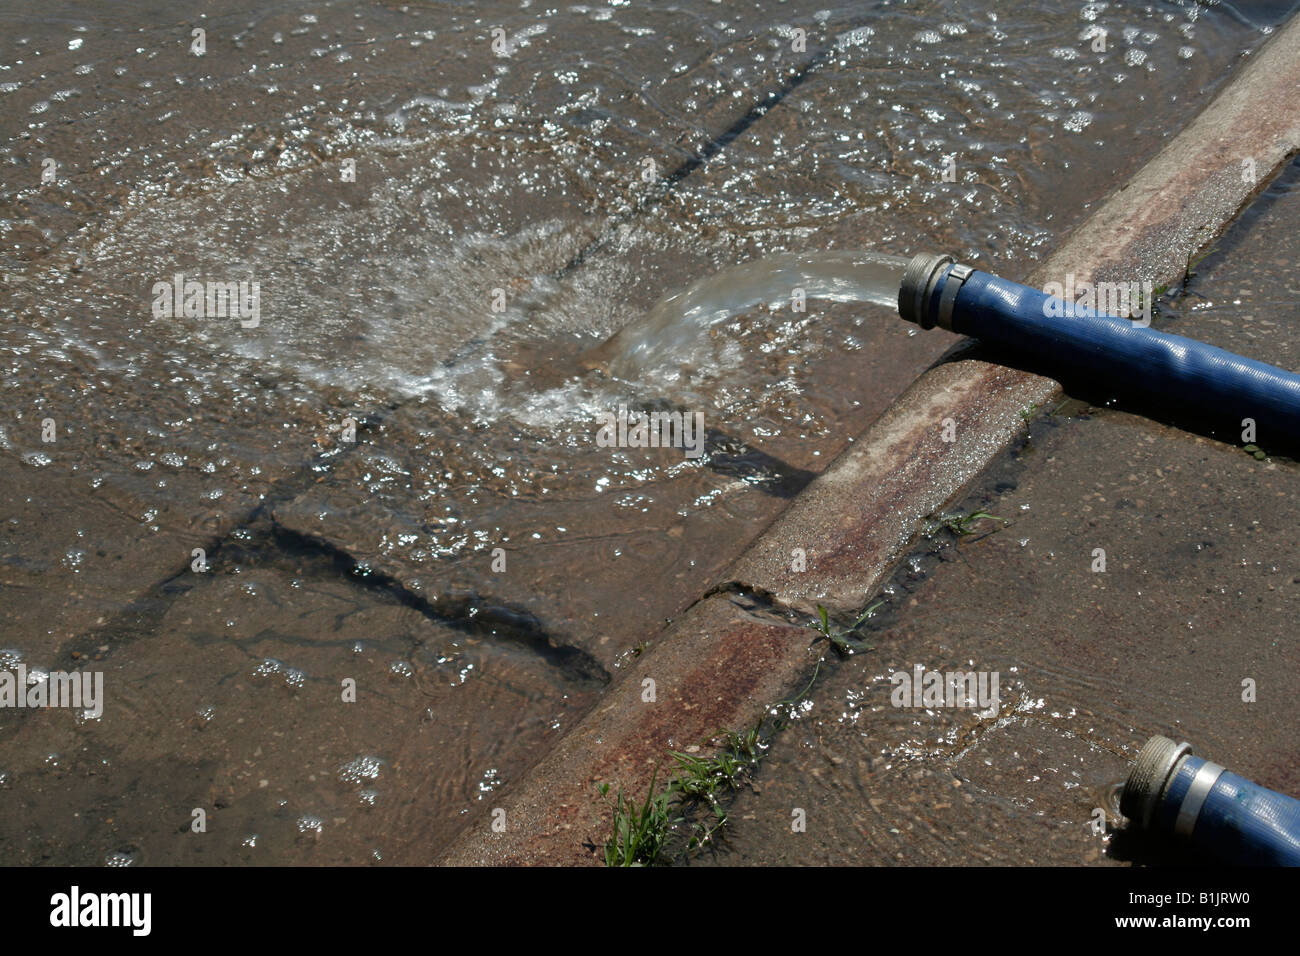 Hosepipes empty into street after flooding - Stock Image